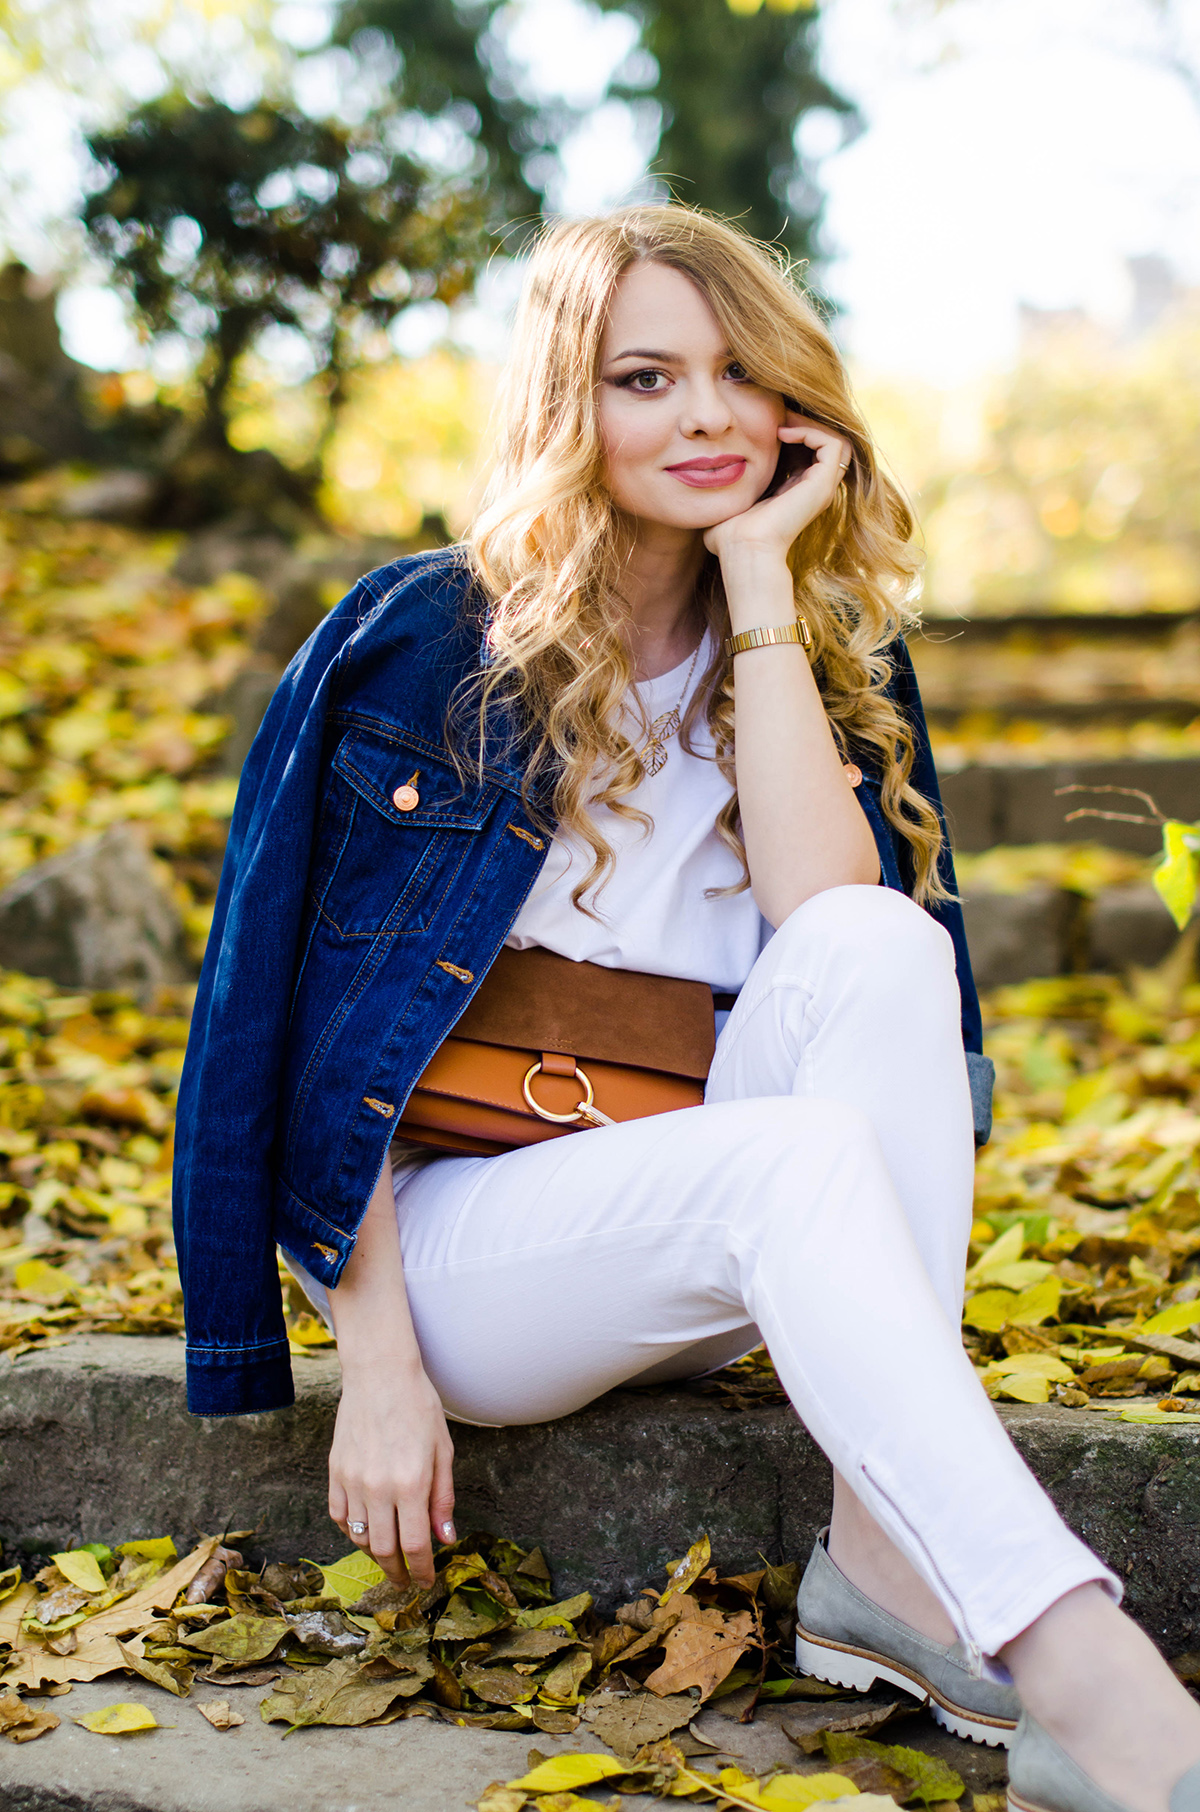 ALL-WHITE-OUTFIT-DENIM-JACKET-CHLOE-BAG-AUTUMN (10)